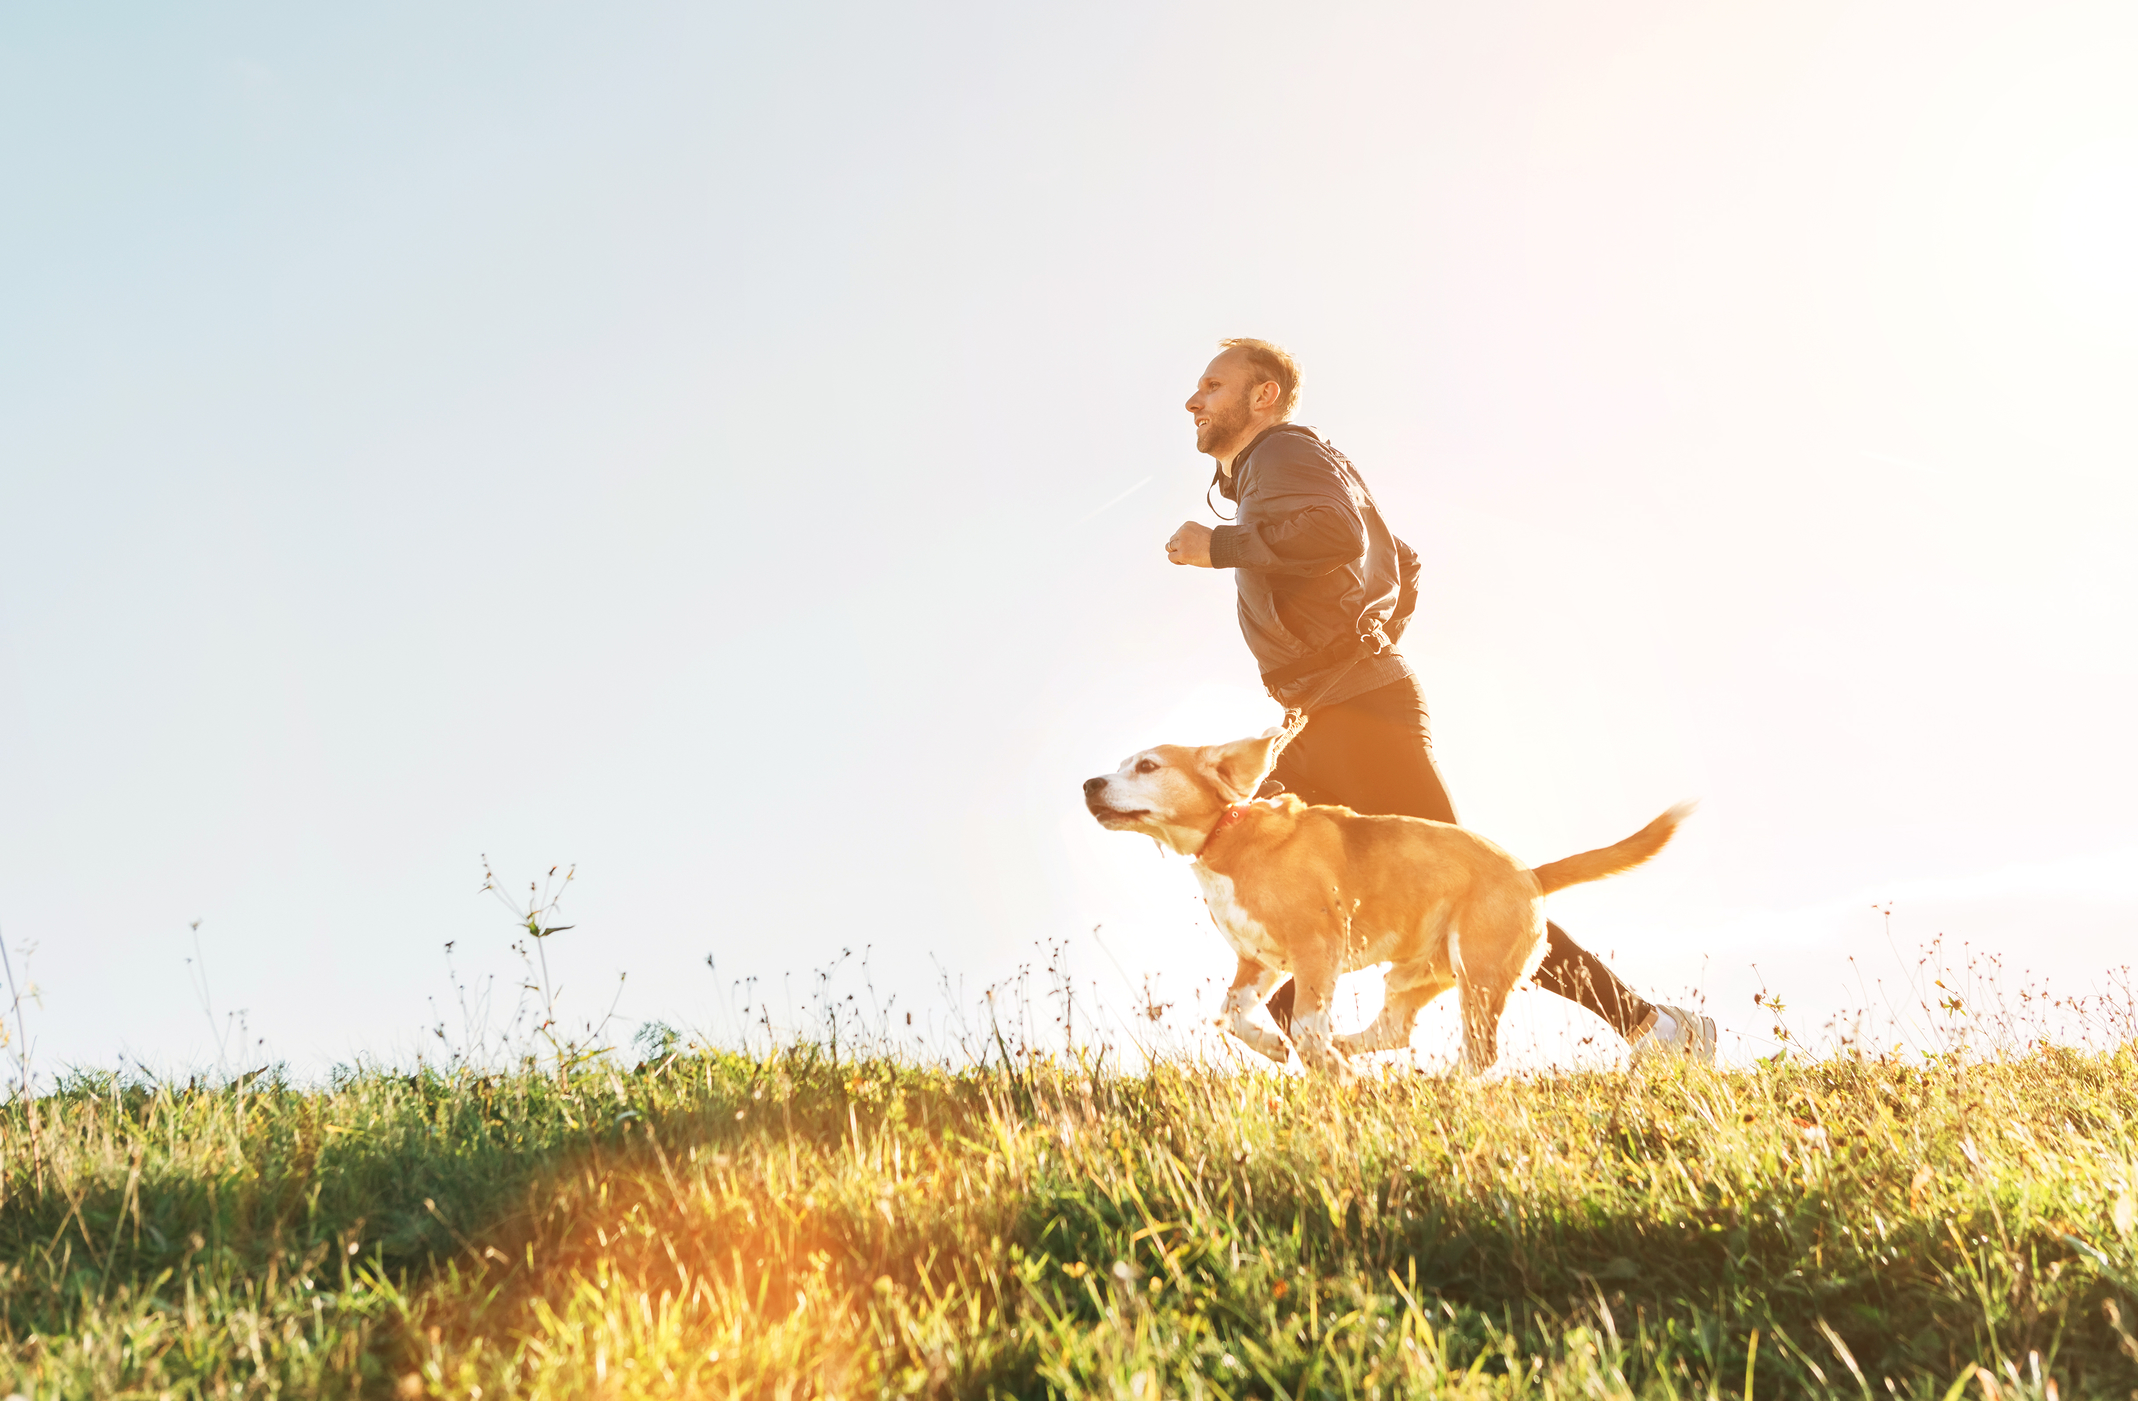 Homeward Bound Dog Walking  Why Your Dog Needs Exercise